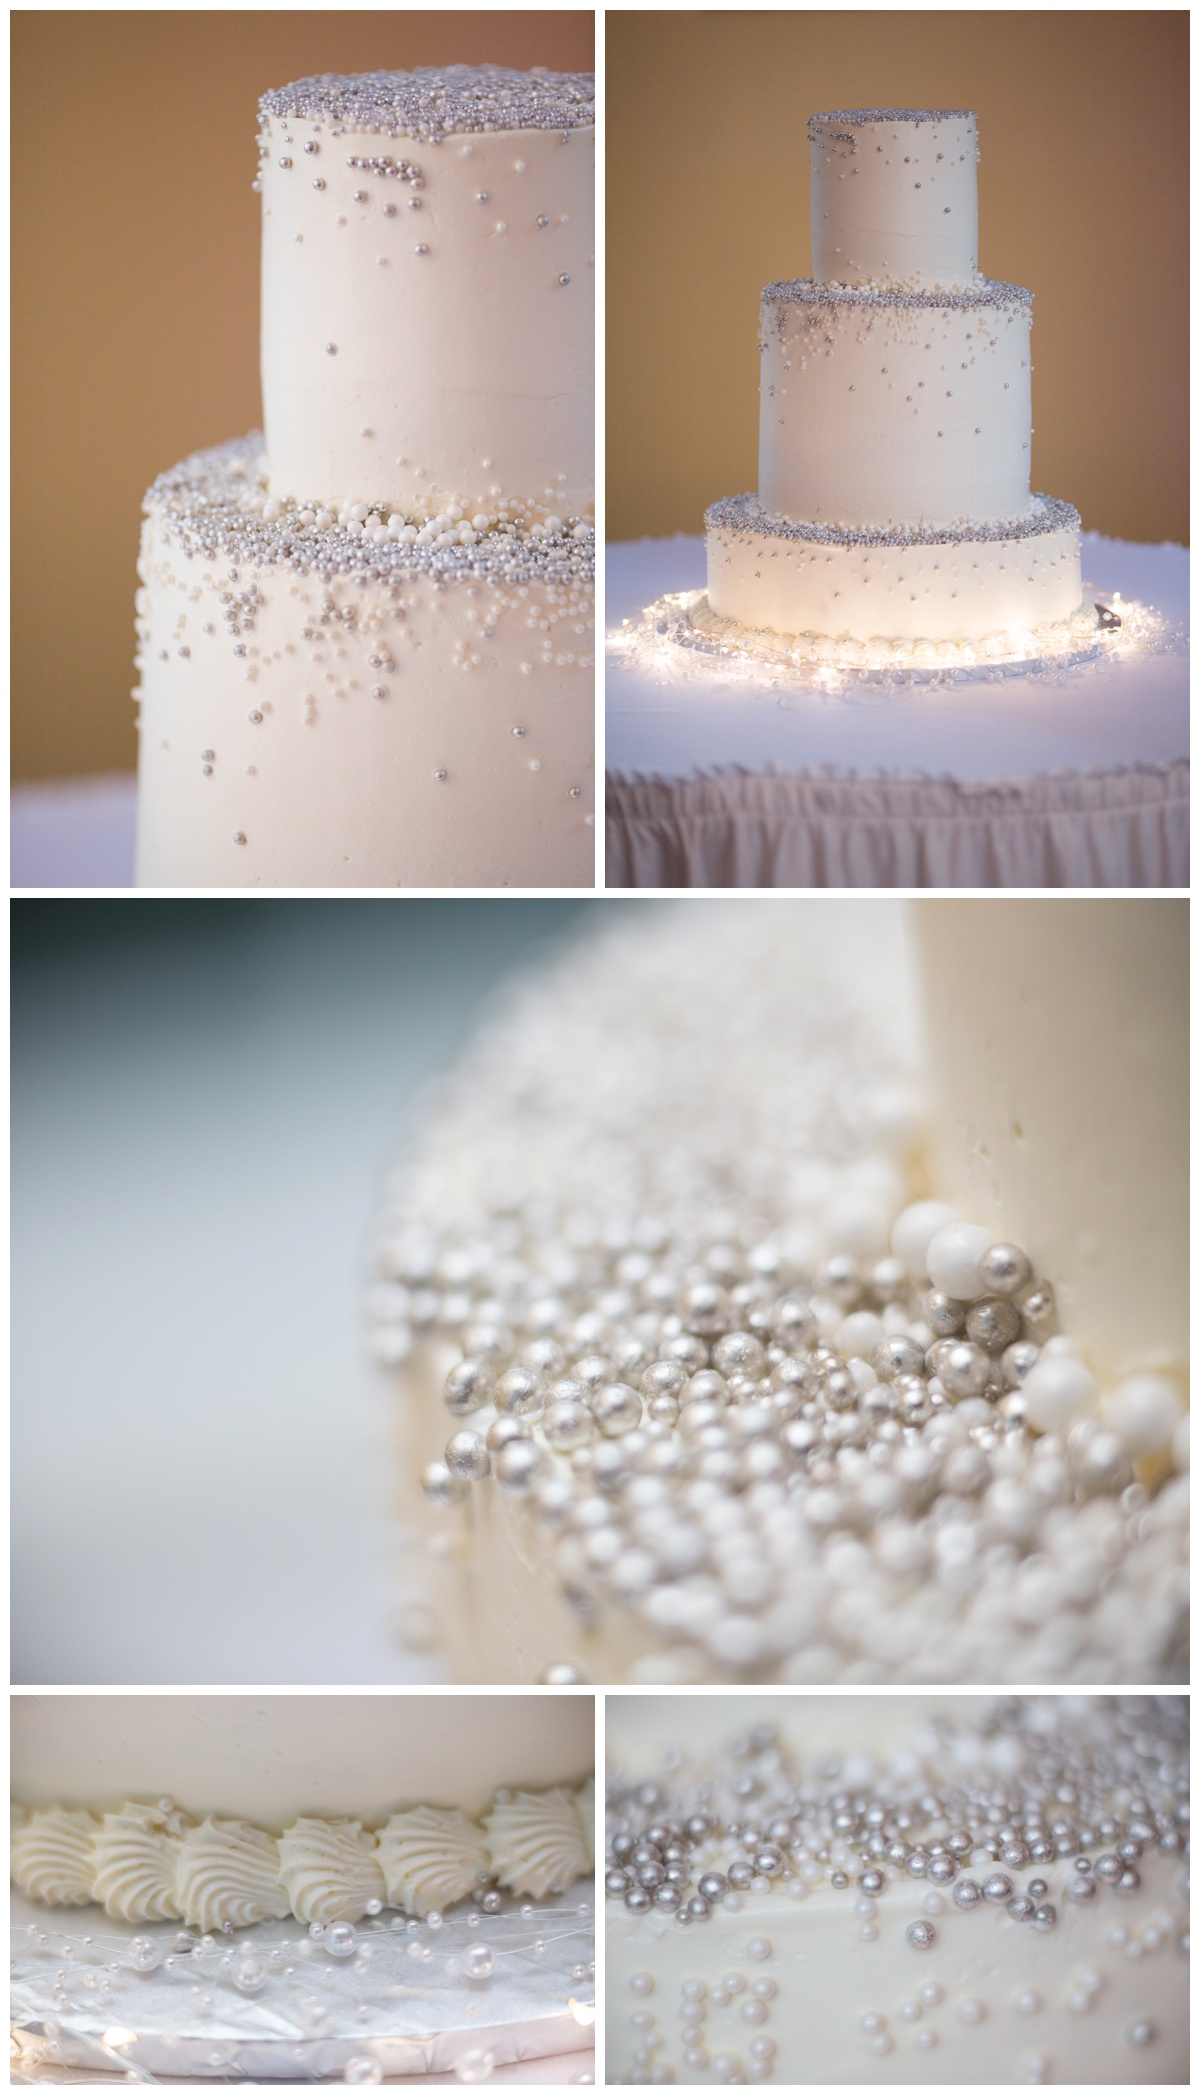 The Cake | Wedding Photographer | Alyssia Booth's Candid & Studio